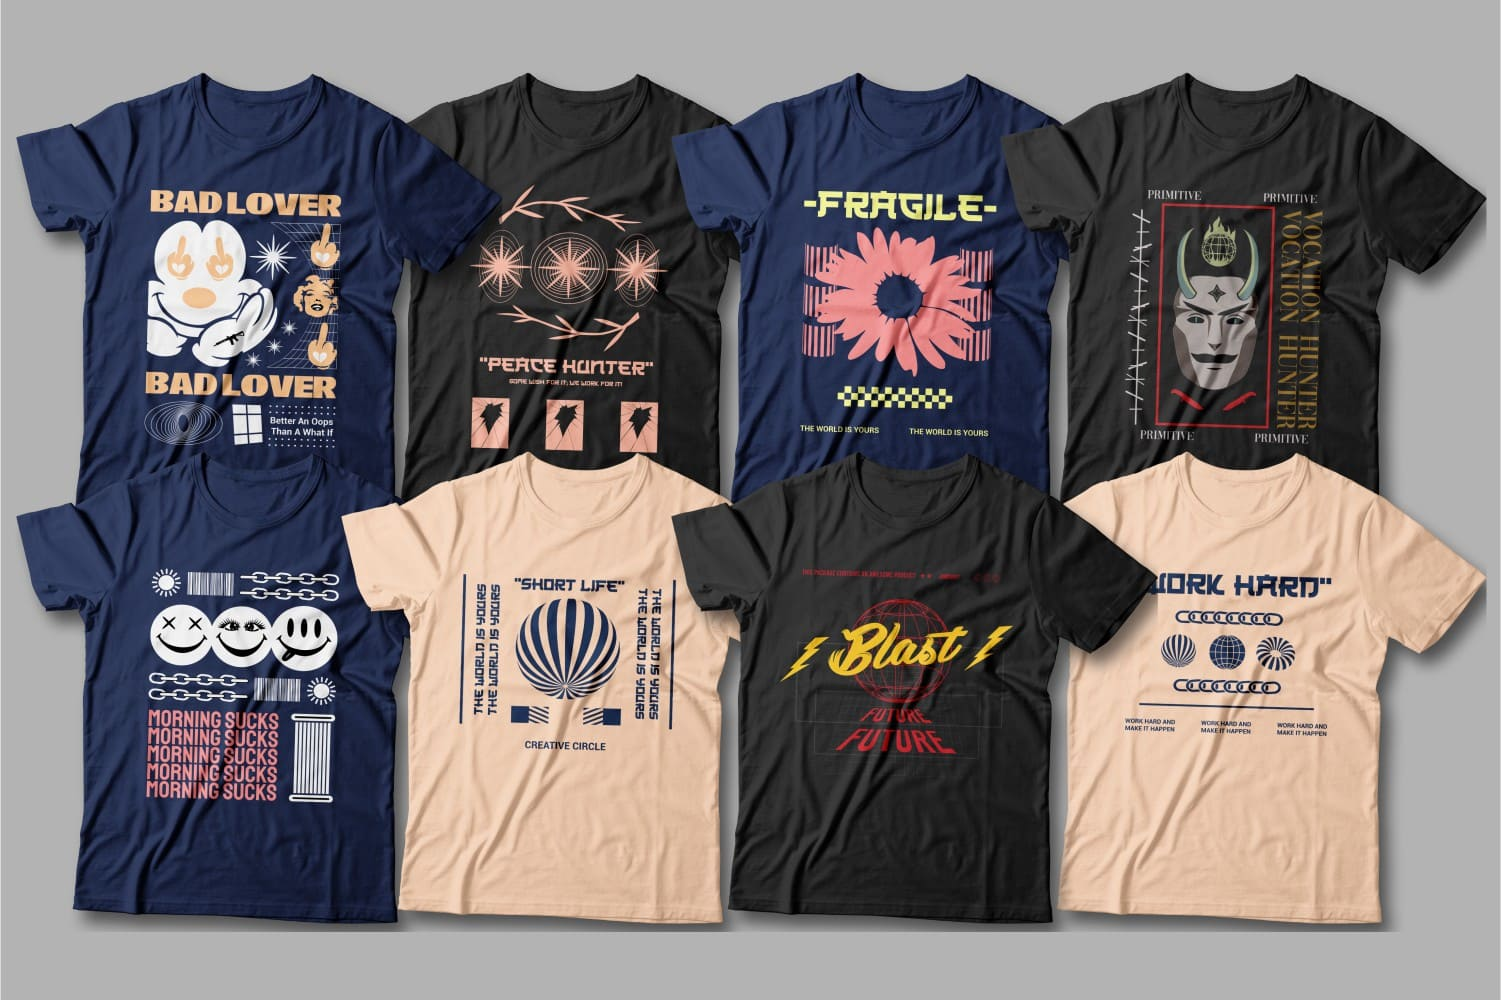 Classical t-shirts in dark colors.